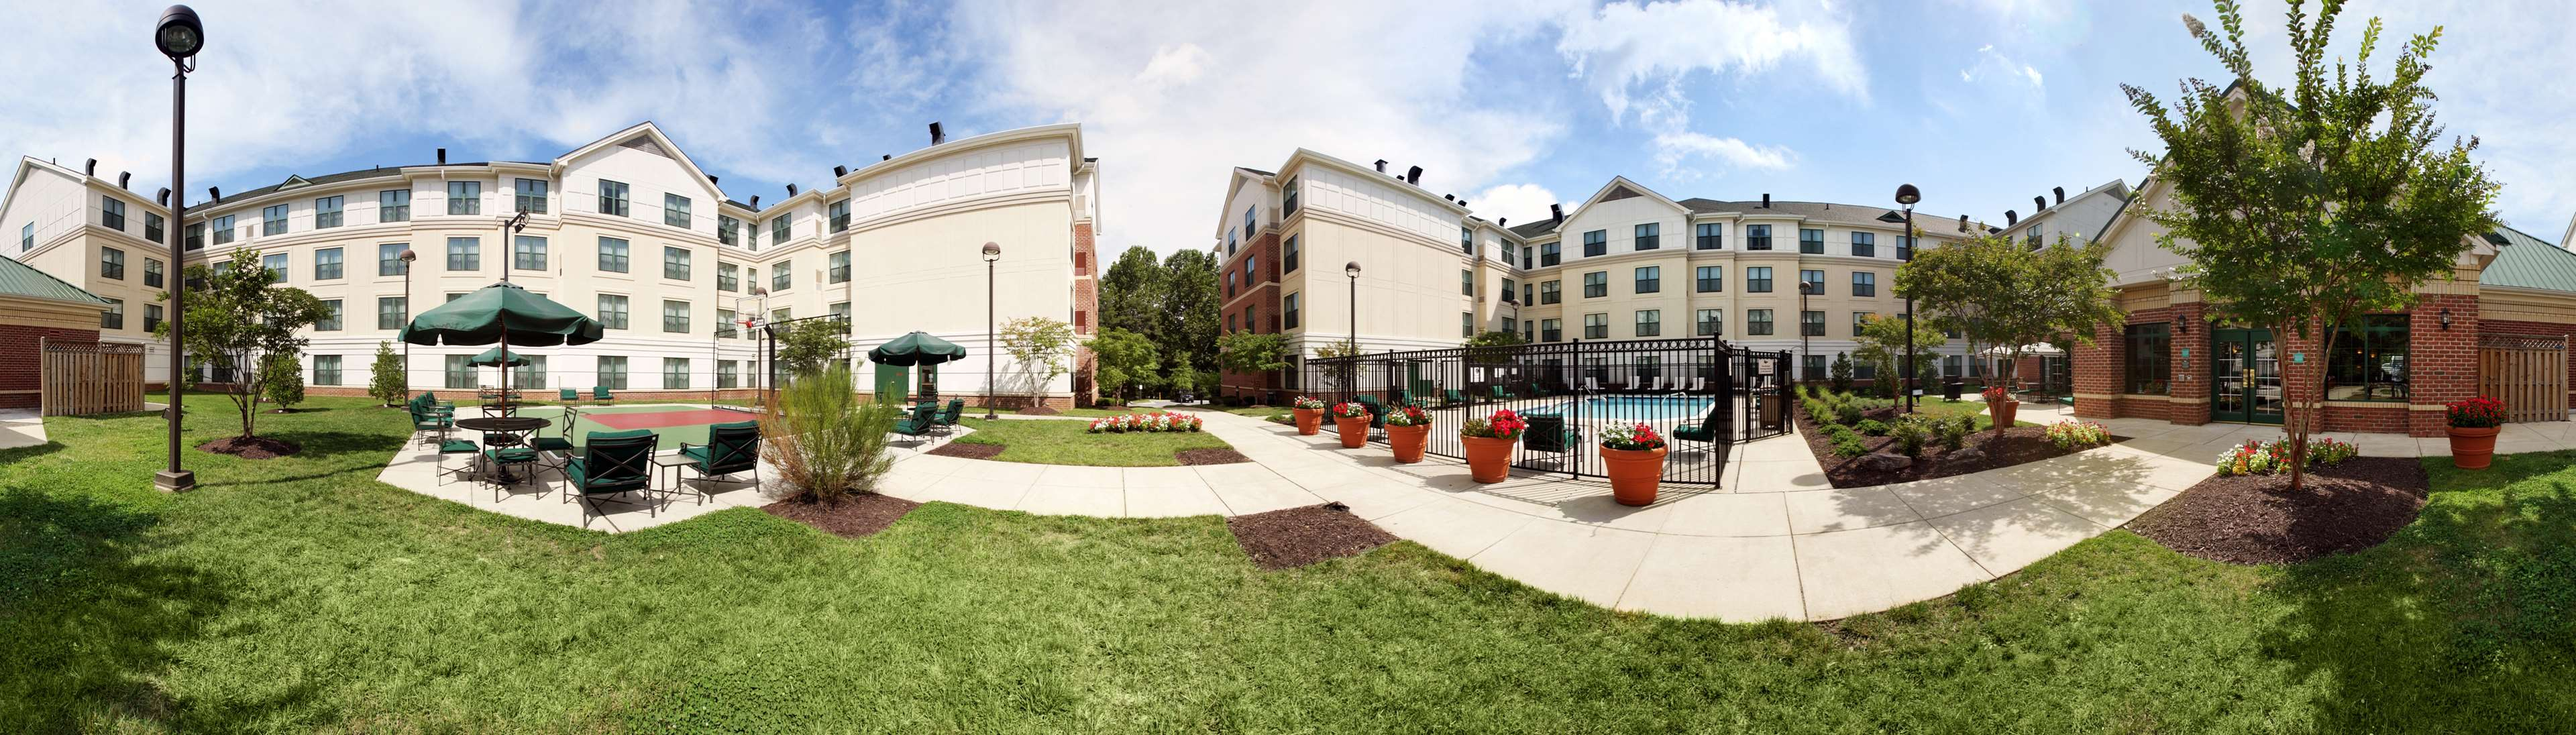 Homewood Suites by Hilton Columbia image 2